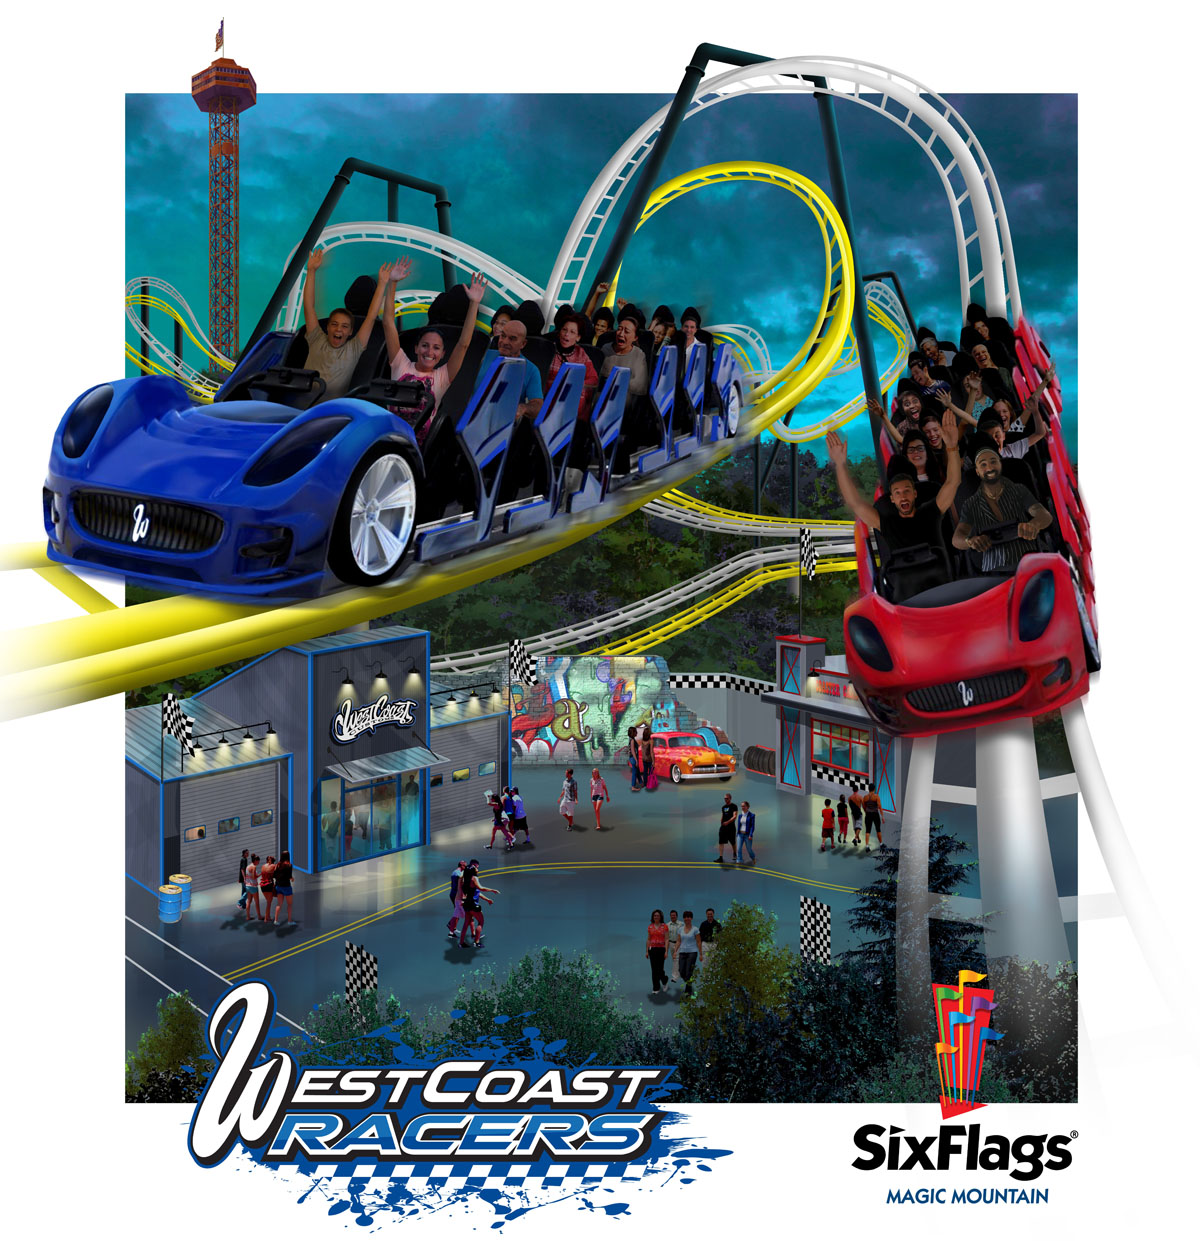 WestCoast Racers, Six Flags Magic Mountain Valencia CA